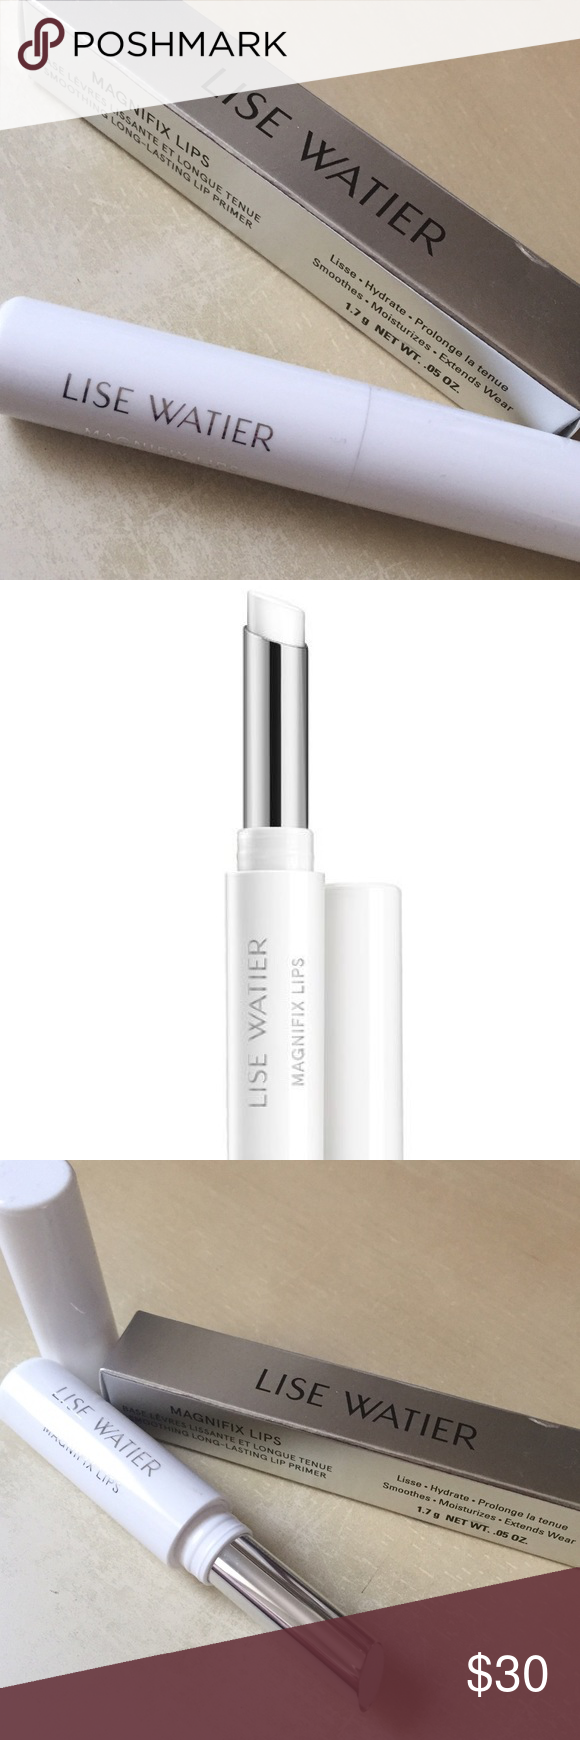 Magnifix Lip Primer LISE WATIER Currently SOLD OUT on their site!!! Amazing lip primer that improves lipstick performance. When worn alone, creates the appearance of younger, fuller looking lips. ✅ Smoothes / Moisturizes surface of lips ✅ Makes lipstick long-lasting ✅ Paraben free Currently retails for $35 / BRAND NEW IN PACKAGE Lise Watier Makeup Lip Balm & Gloss